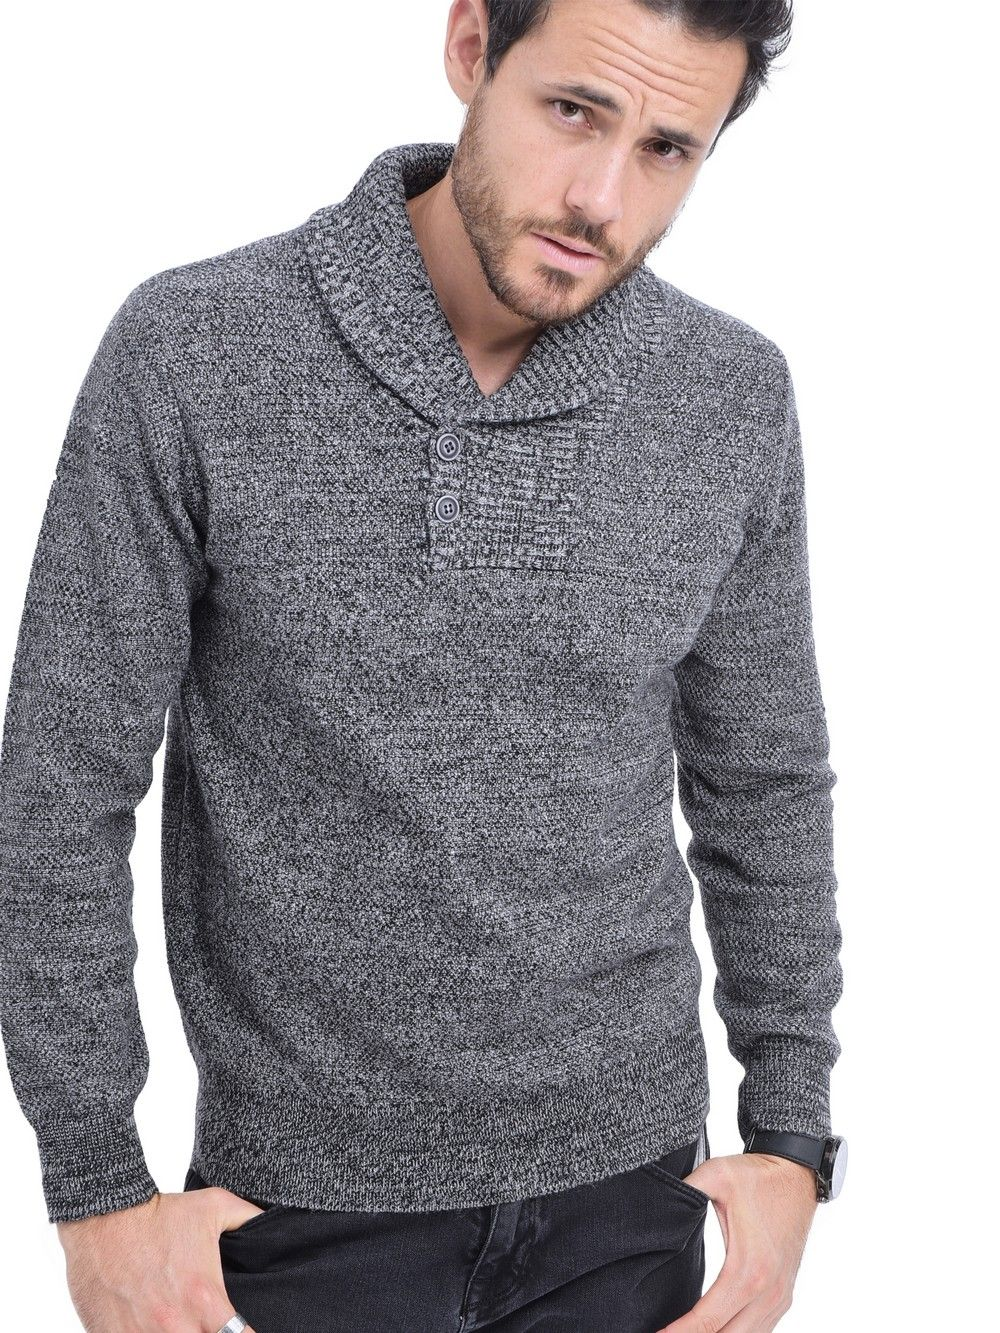 William De Faye Shawl Collar Jacquard Sweater with Butons in Black